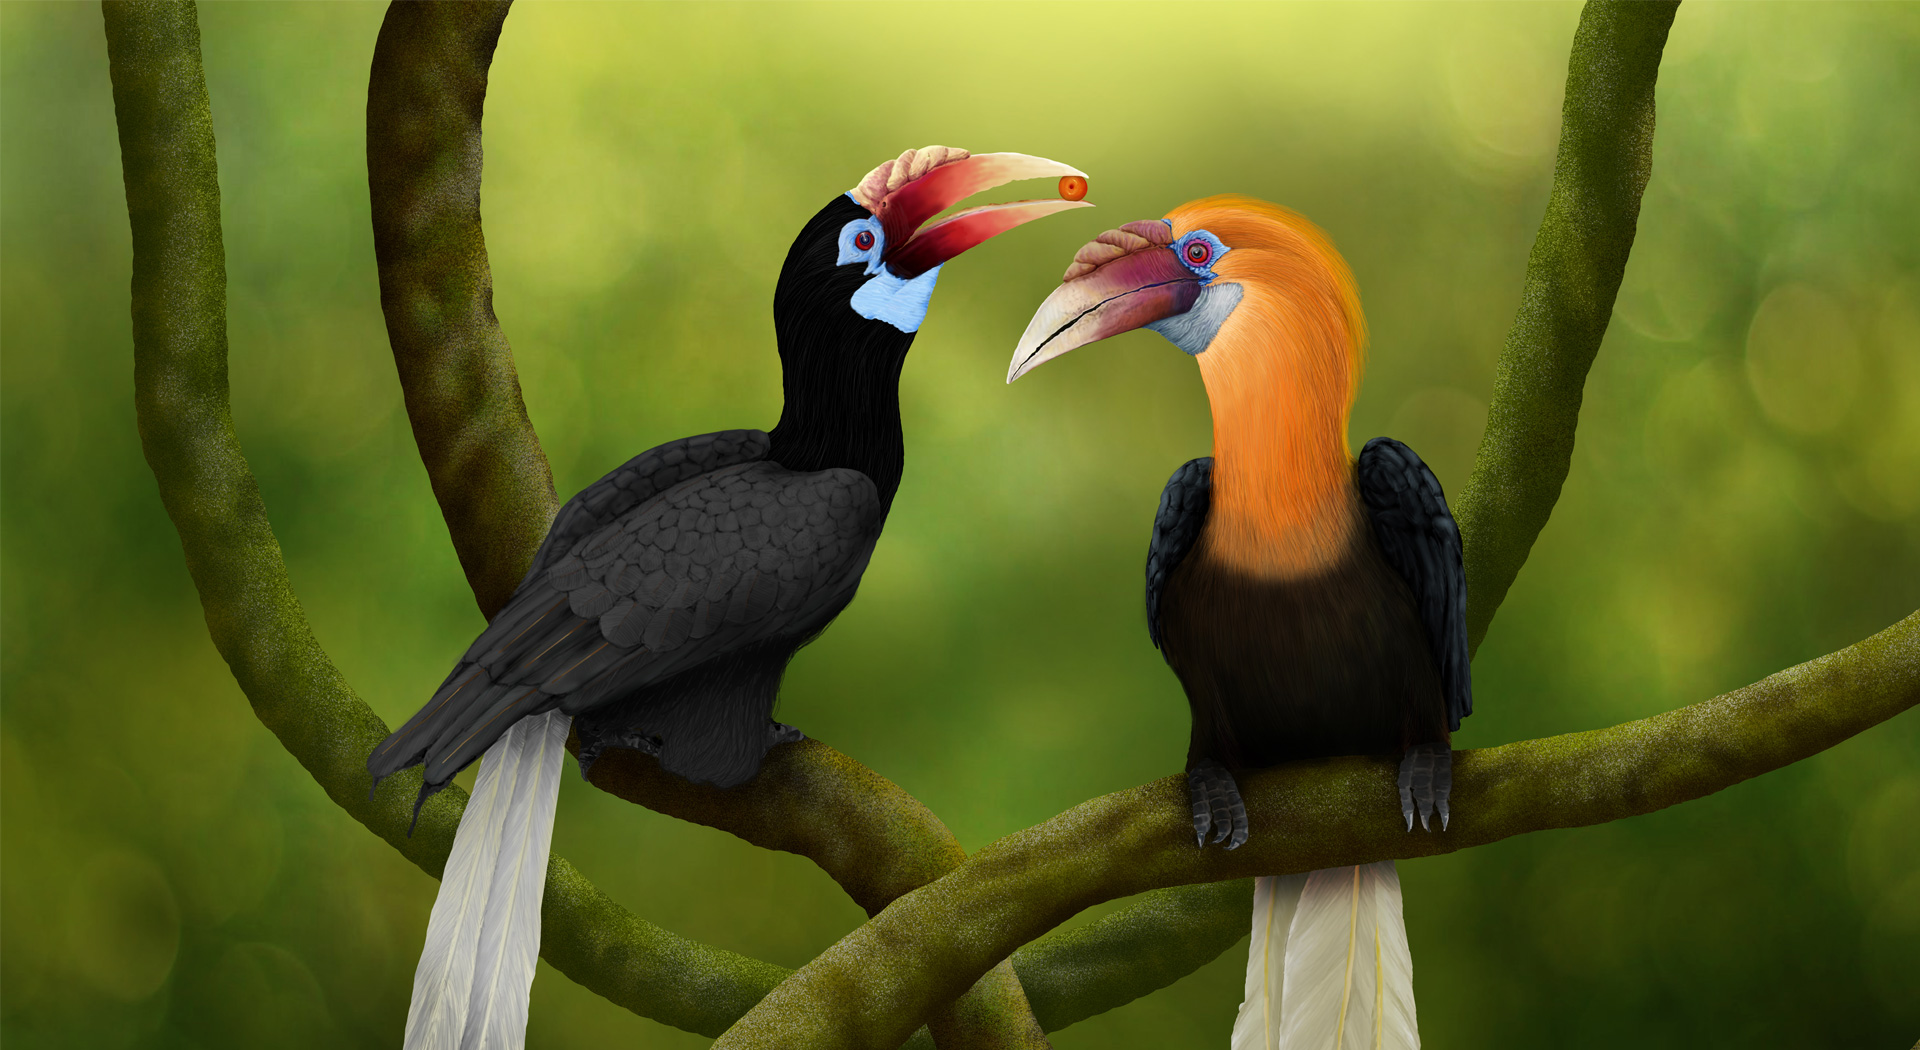 Narcondam_hornbill, Bucerotidae family, Hornbill_Painting, Illustration, Birds_Illustration